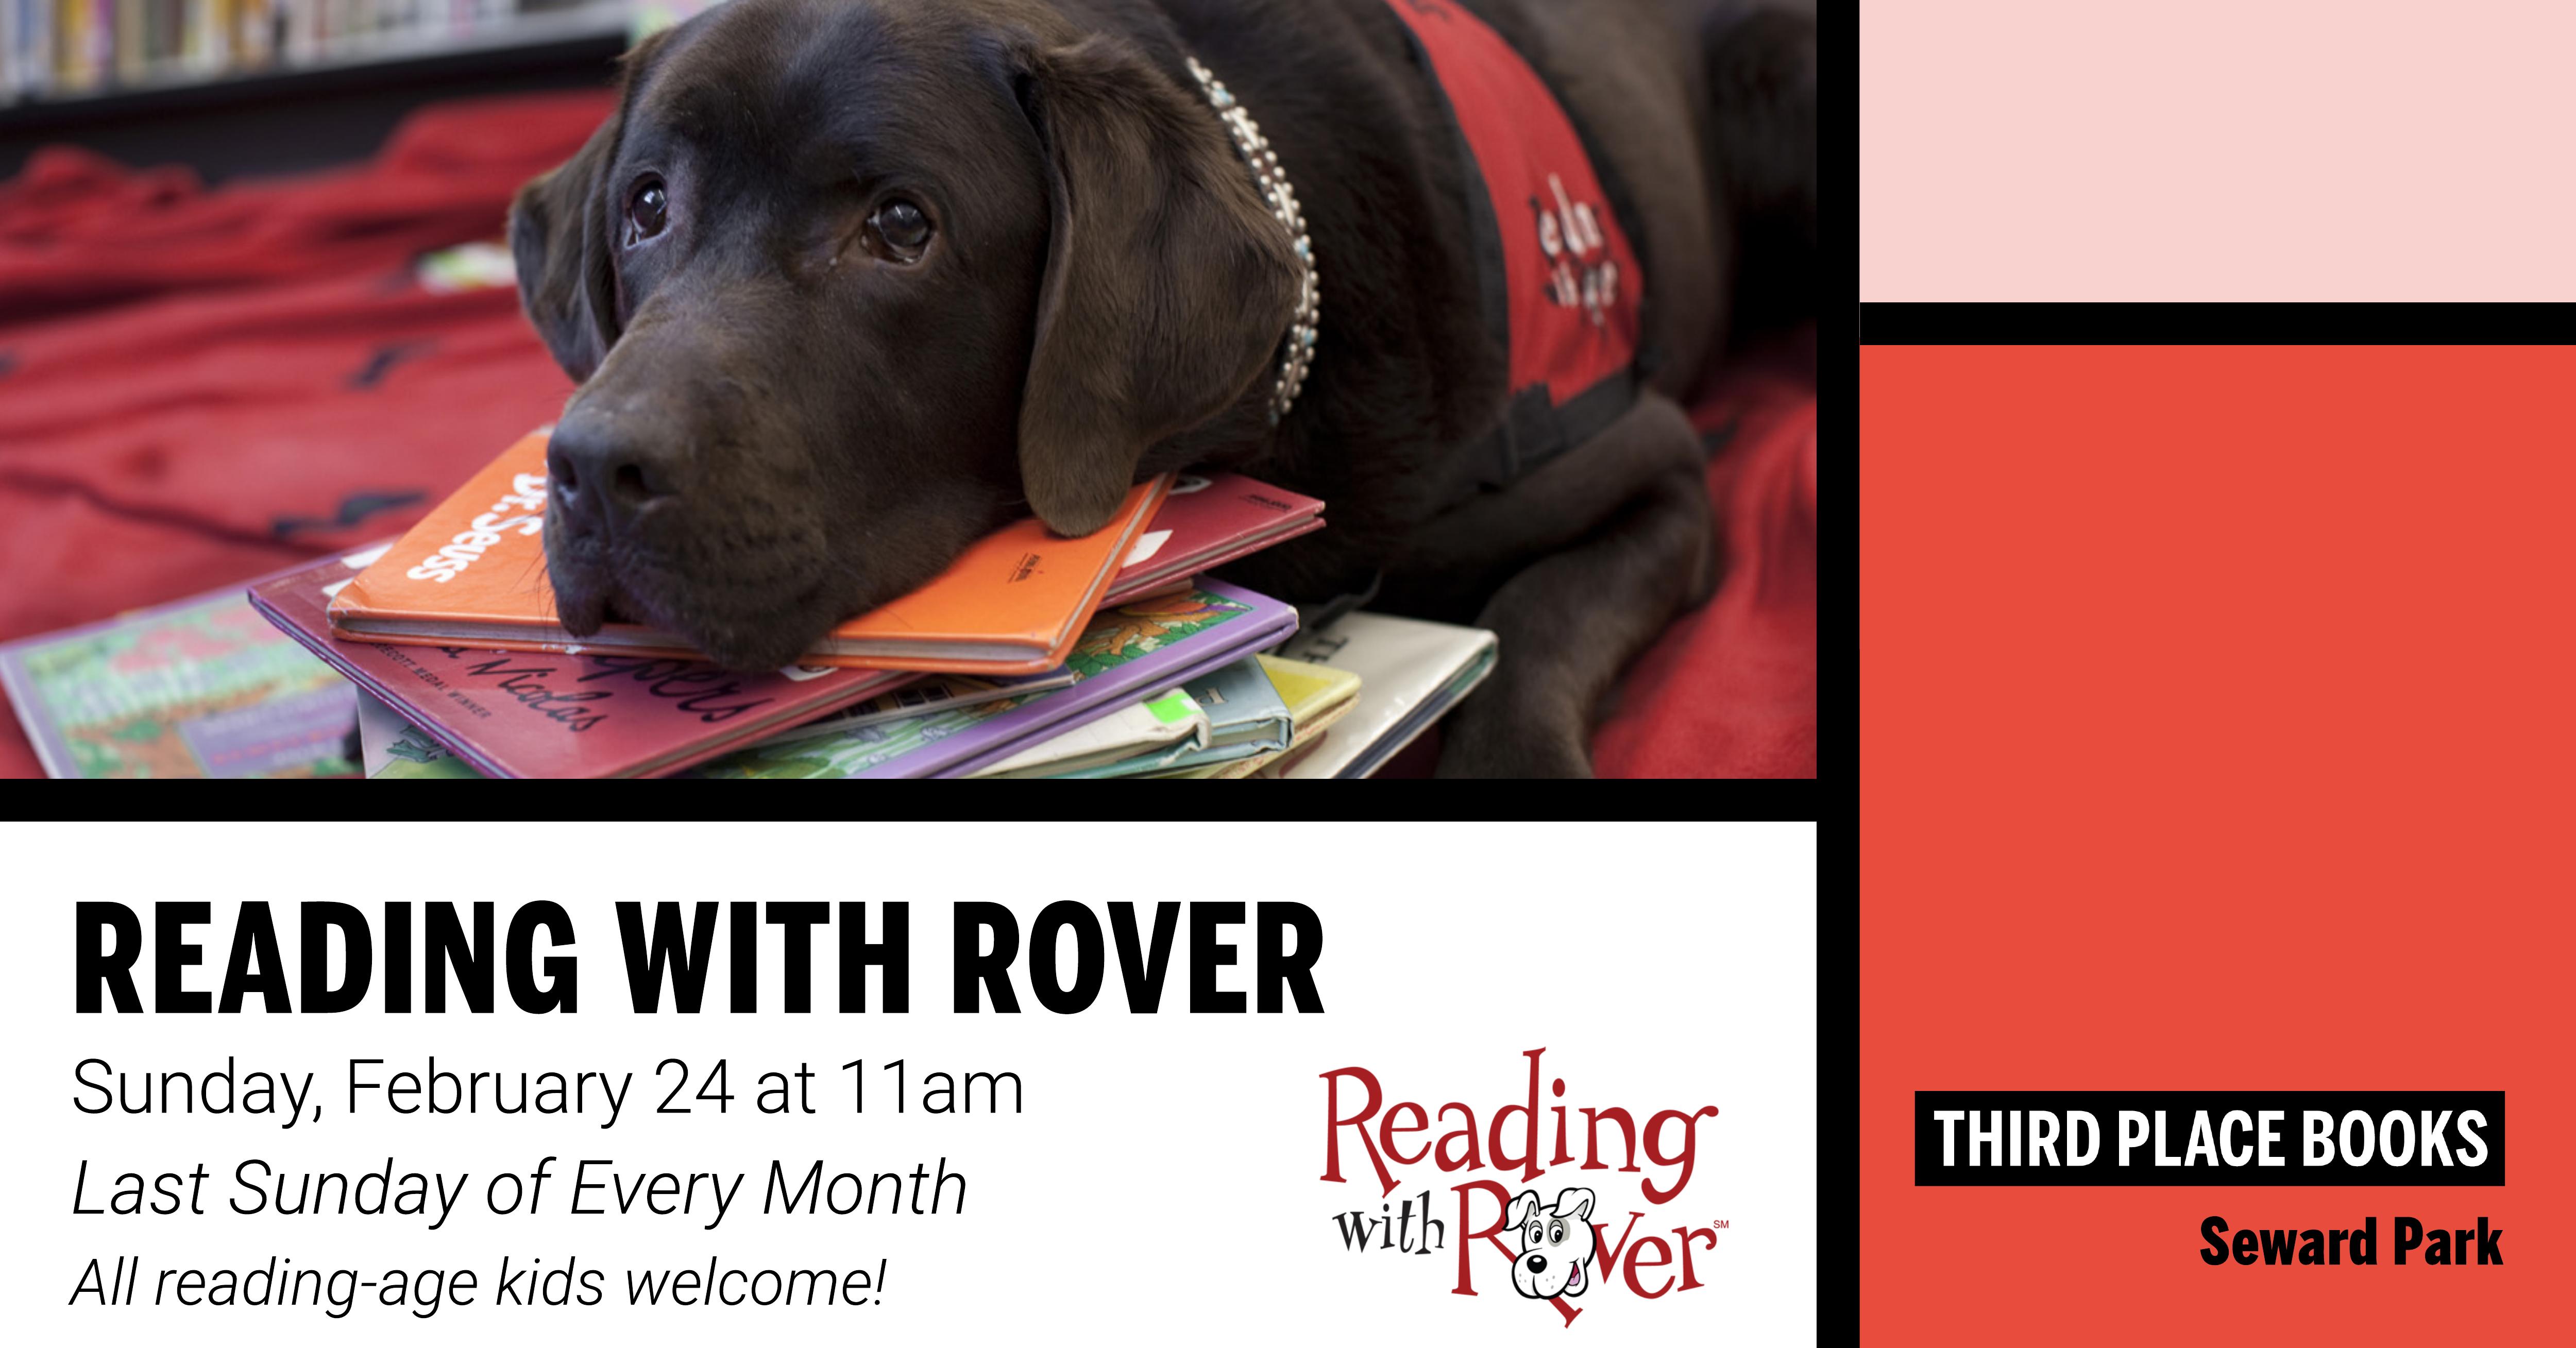 Reading With Rover! Sunday, February 24 at 11am